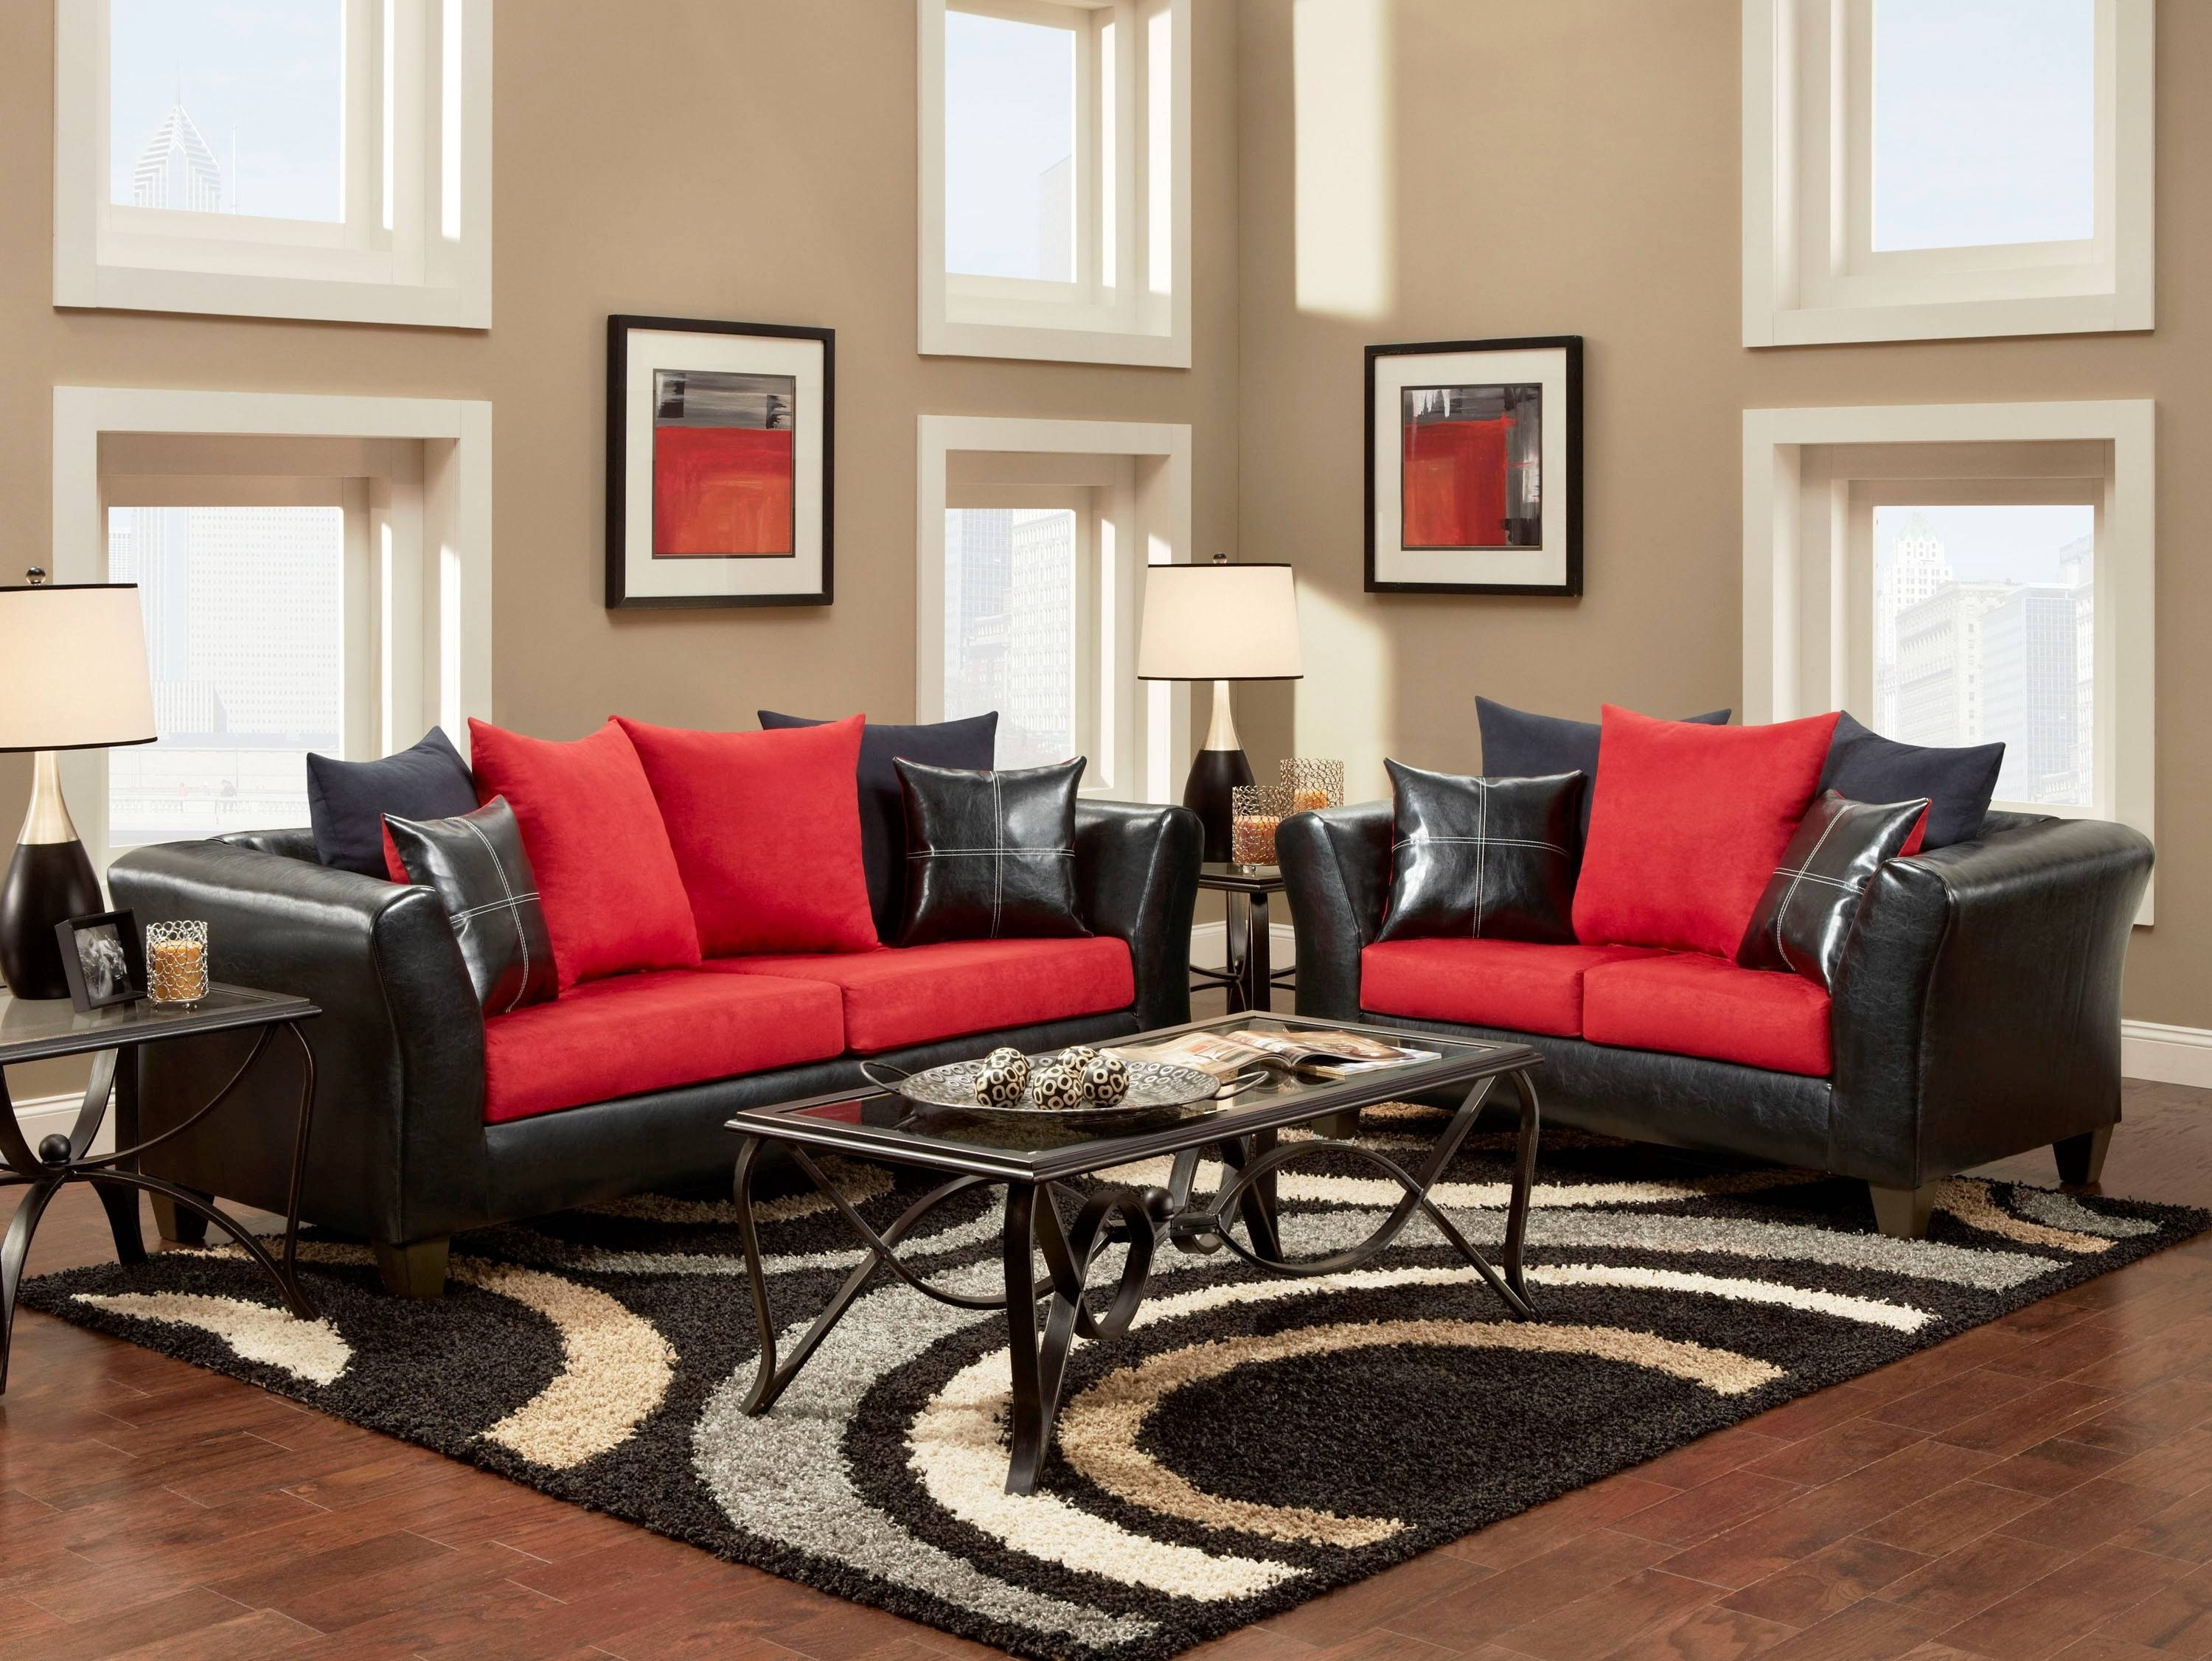 Black And Red Living Room Decor Electric Fireplace Round Coffee pertaining to Red Round Coffee Tables (Image 2 of 30)